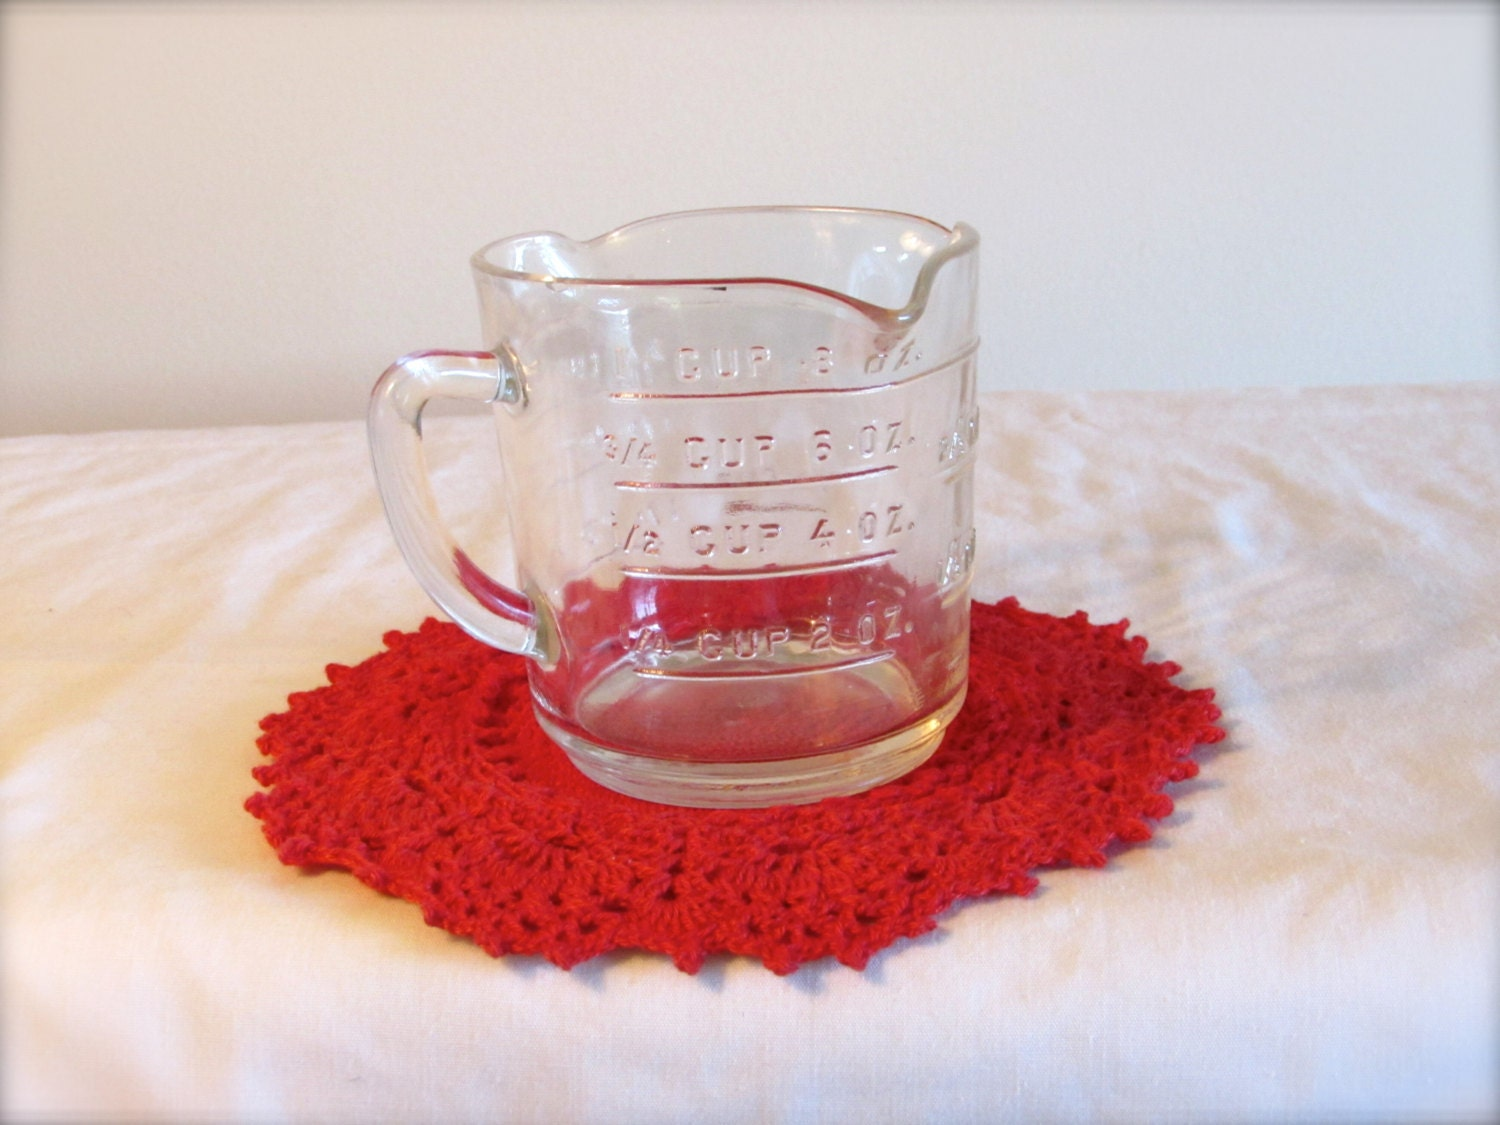 how to clean glass measuring cups